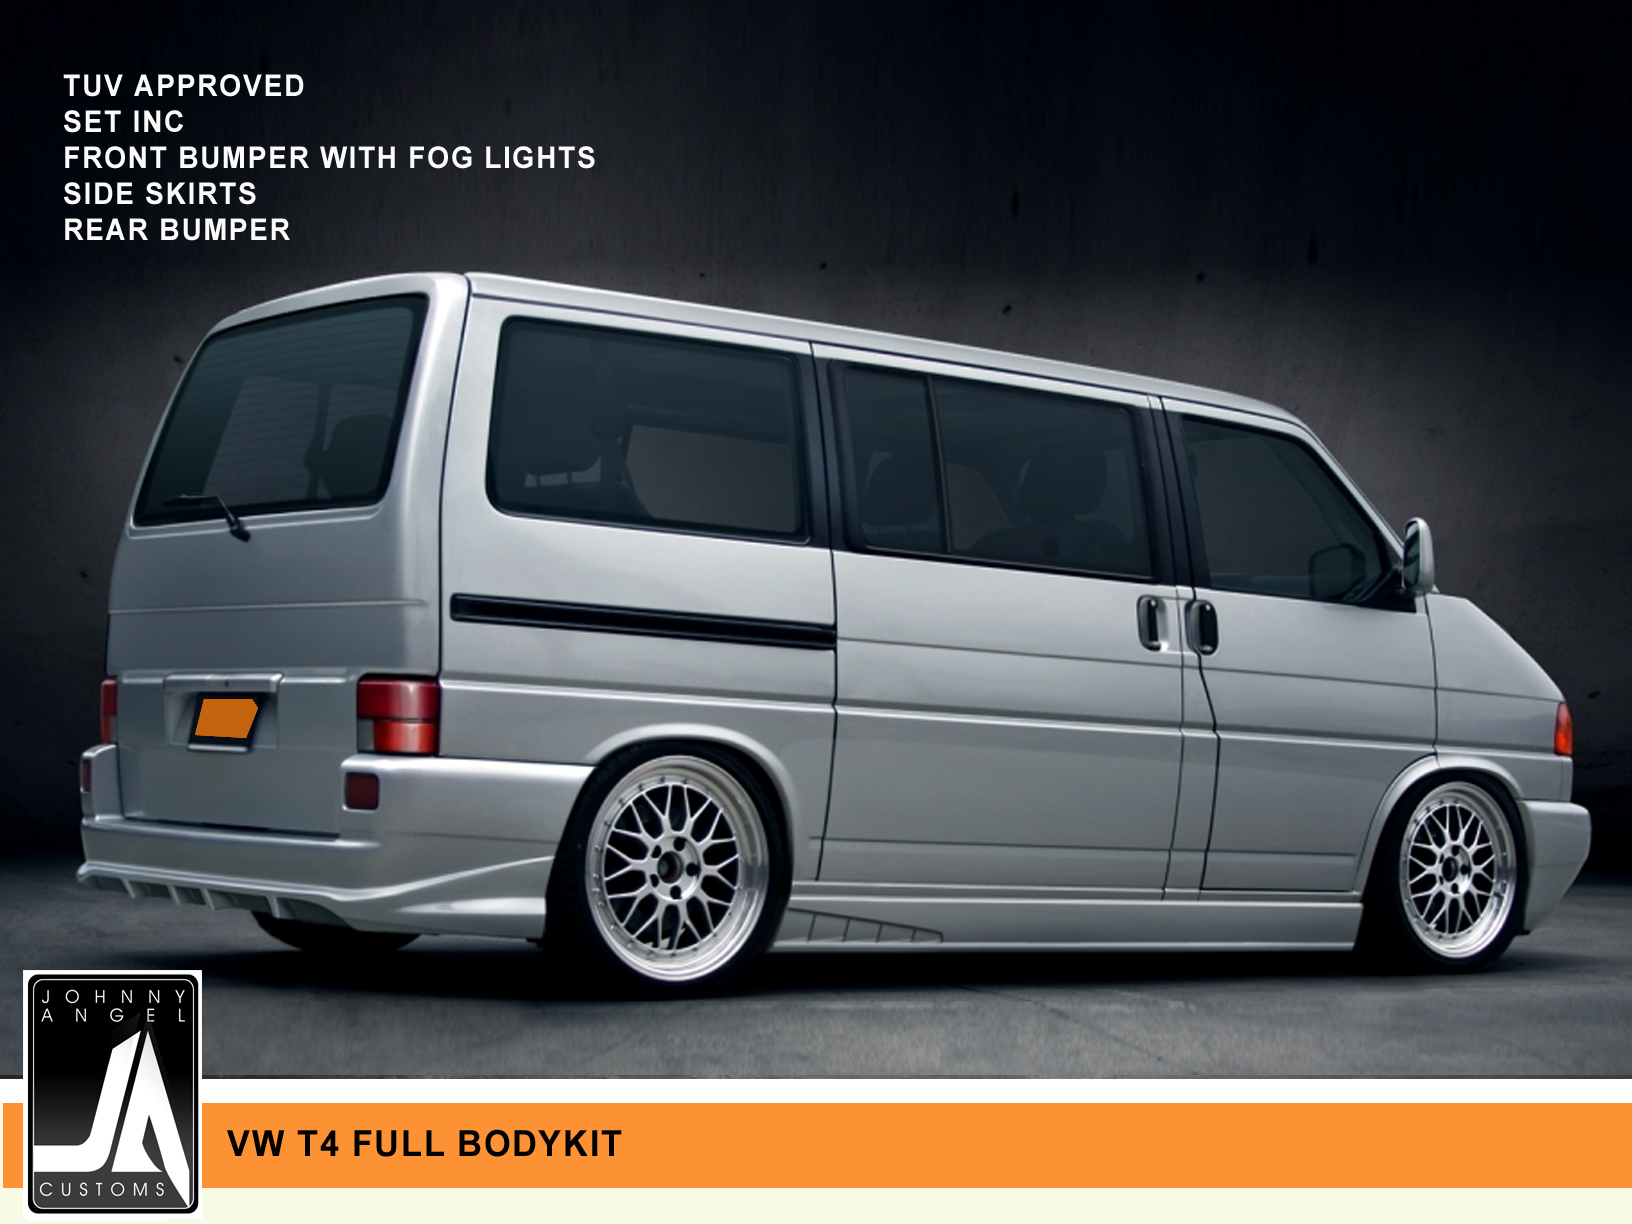 VW T4 FULL BODYKIT   Johnny Angel Customs pic 2